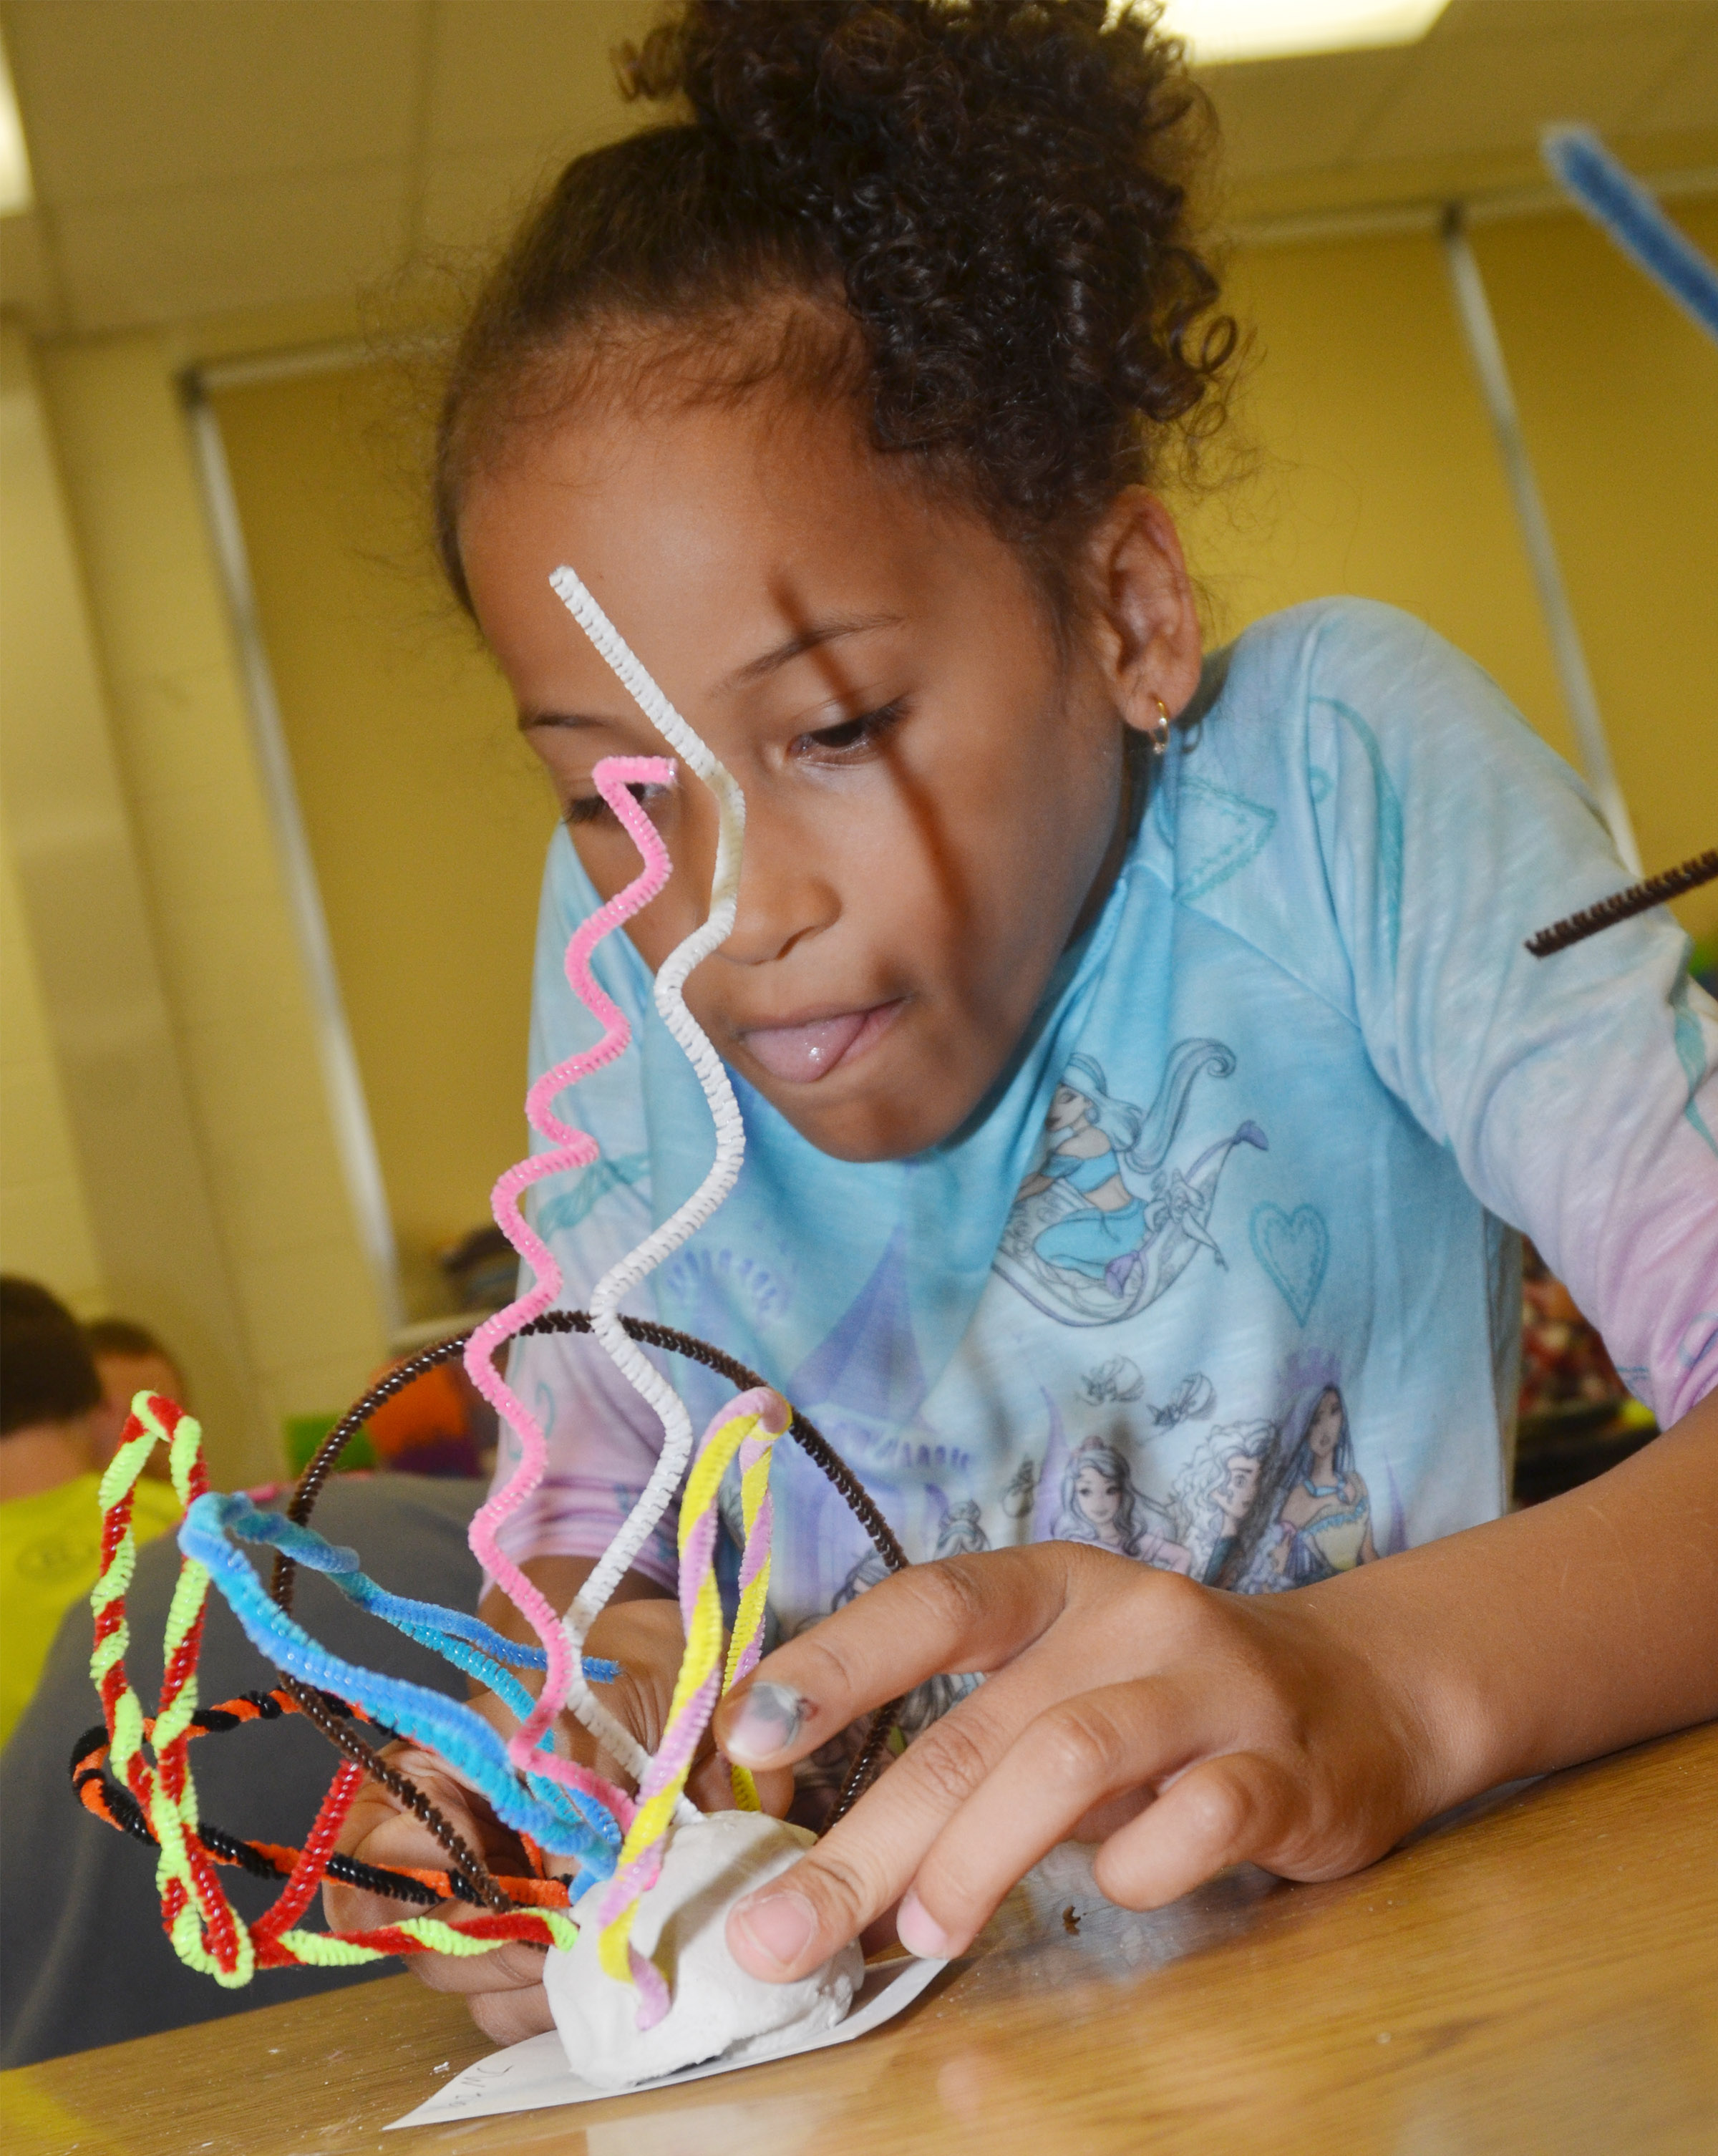 CES second-grader Yazlyn Sutton concentrates as she builds her pipe cleaner sculpture.